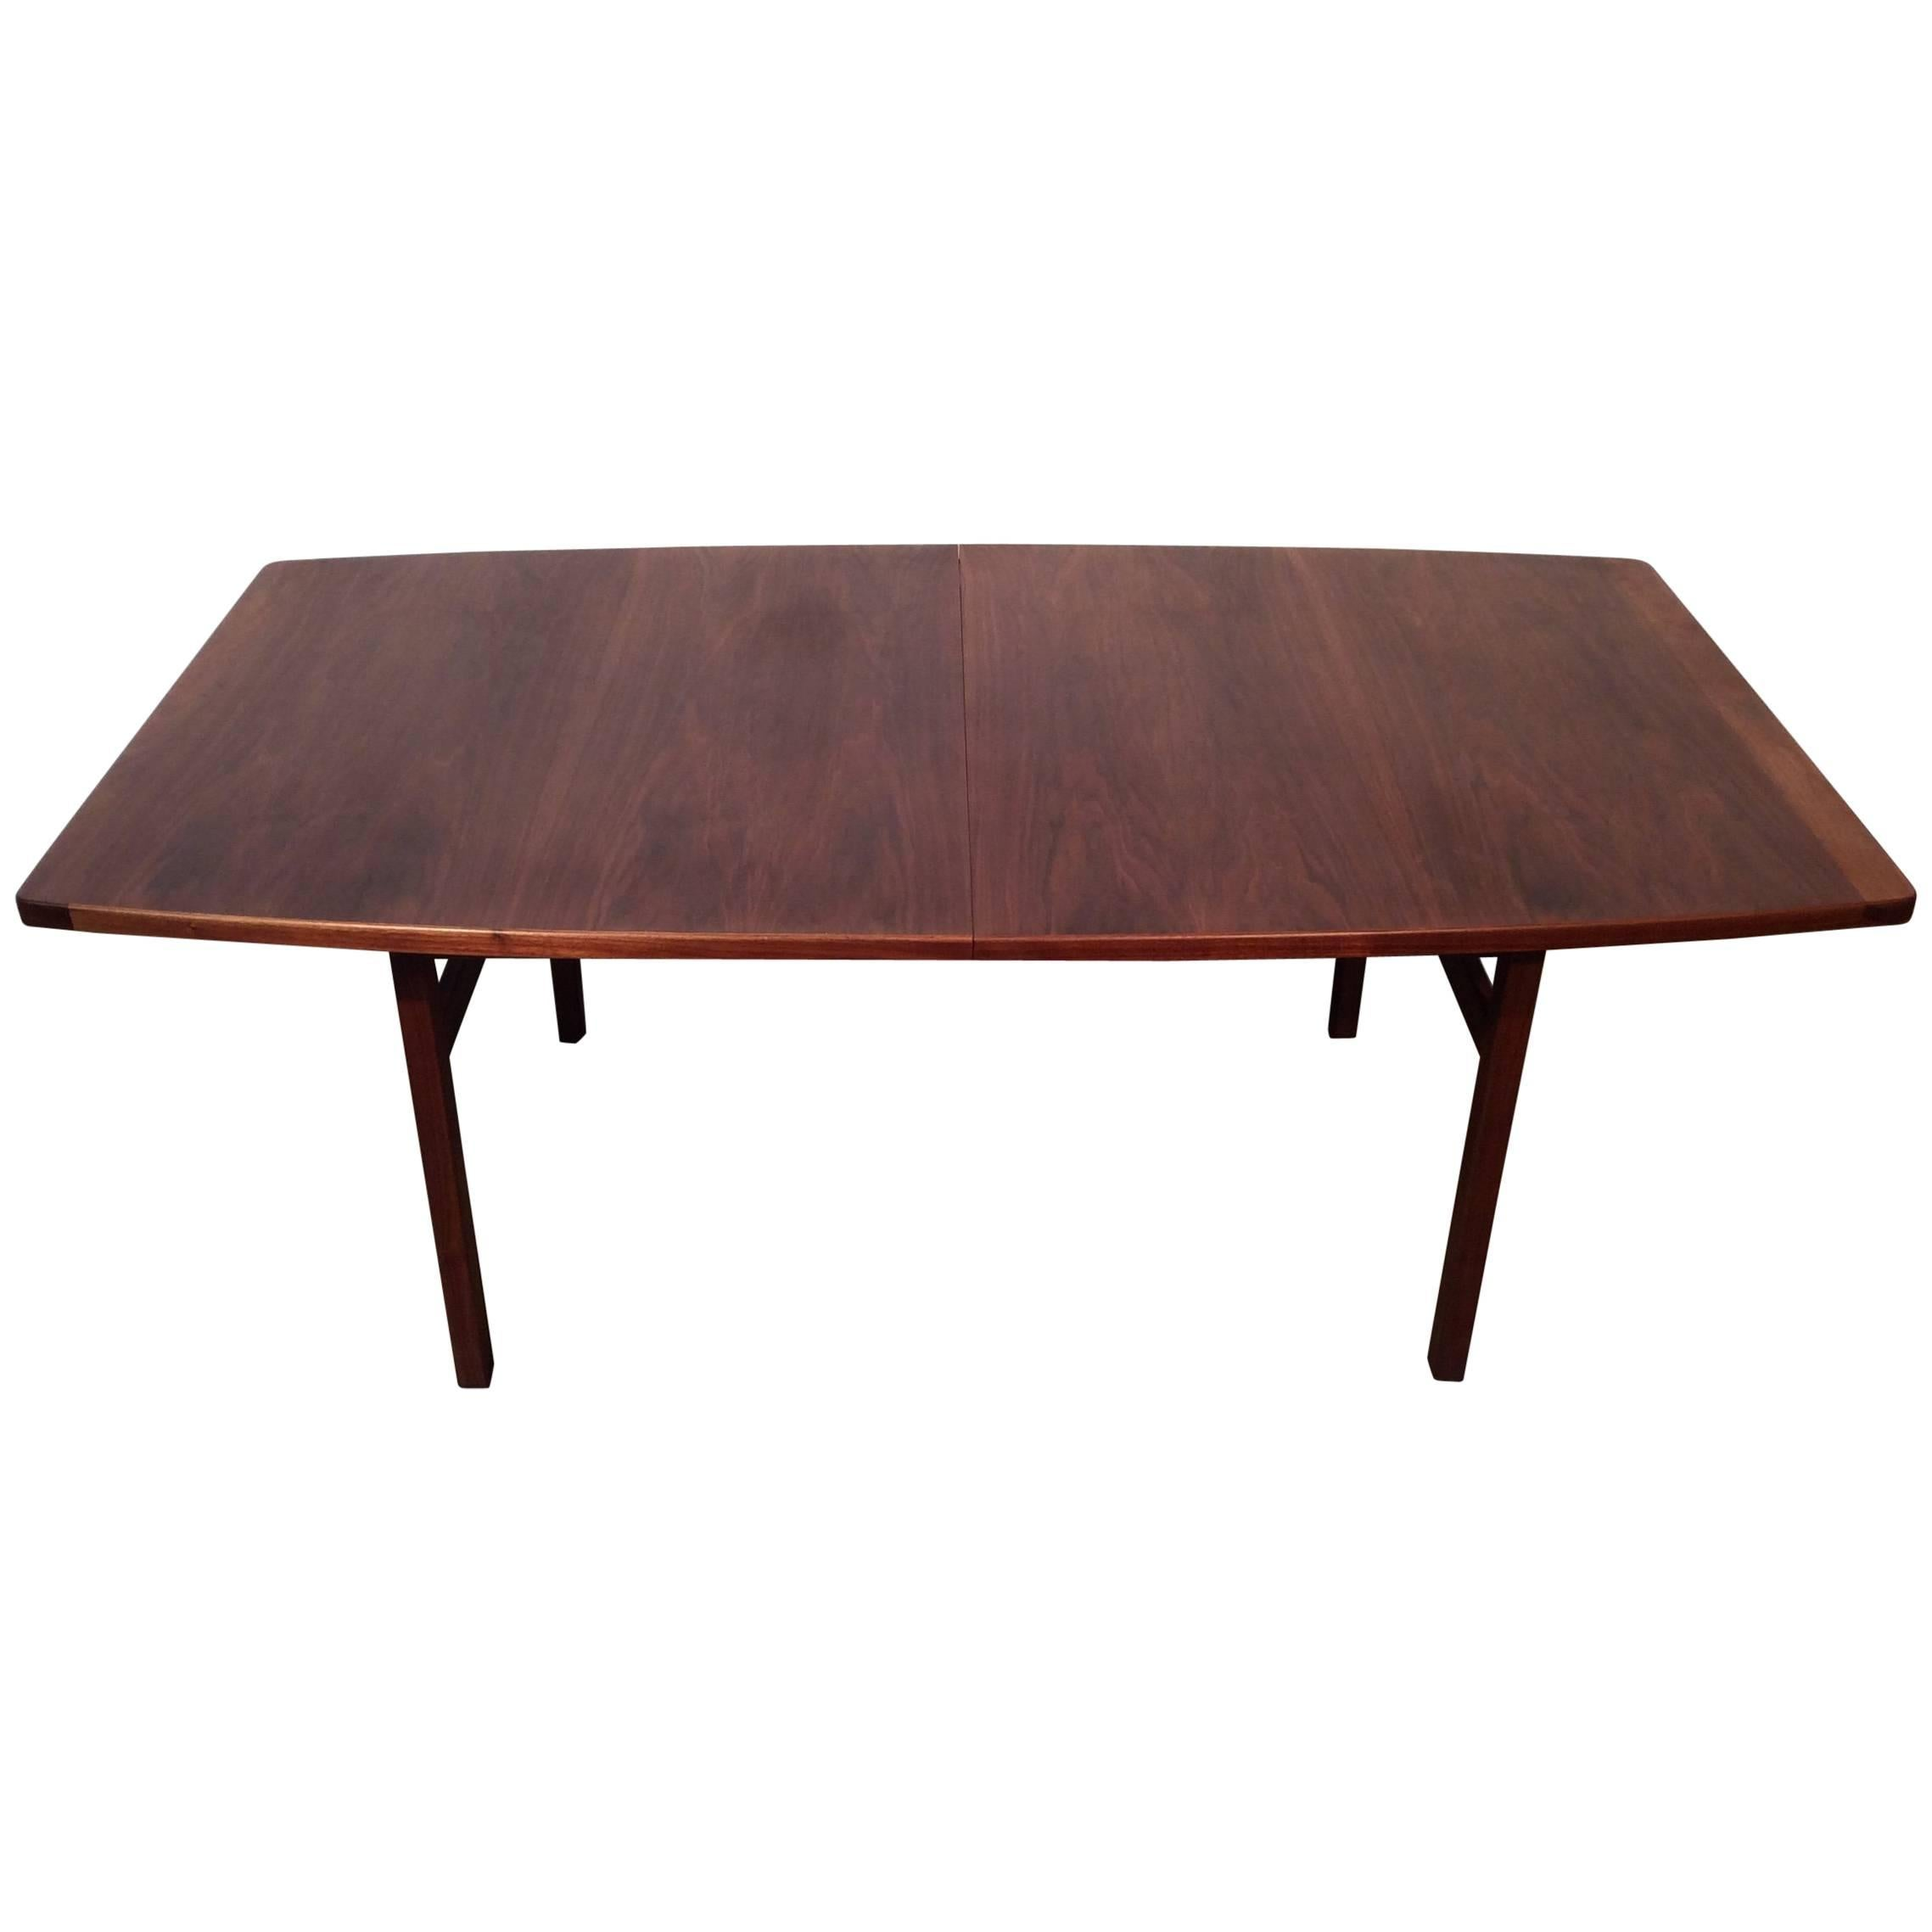 Quality Walnut Dining Table With Two Leaves Designed By Jens Risom,  Midcentury Part 67